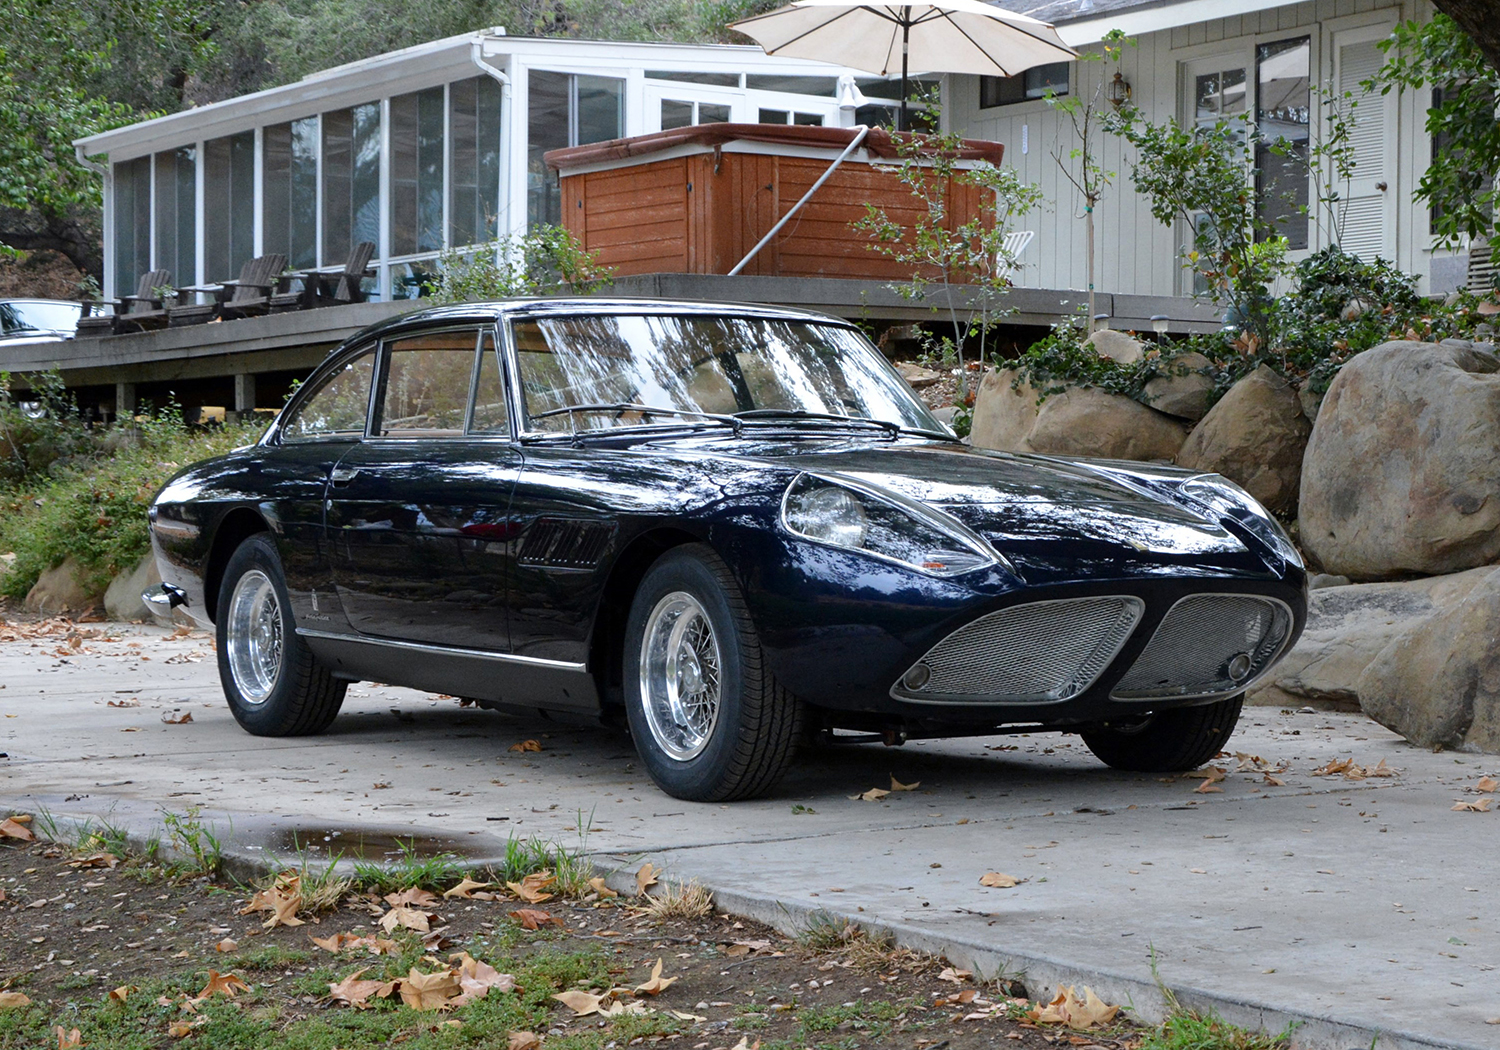 Russo and steele highly exotic one off 1965 ferrari 330 gt russo and steele highly exotic one off 1965 ferrari 330 gt shark nose with important ownership history to cross the block at russo and steeles 2016 vanachro Images